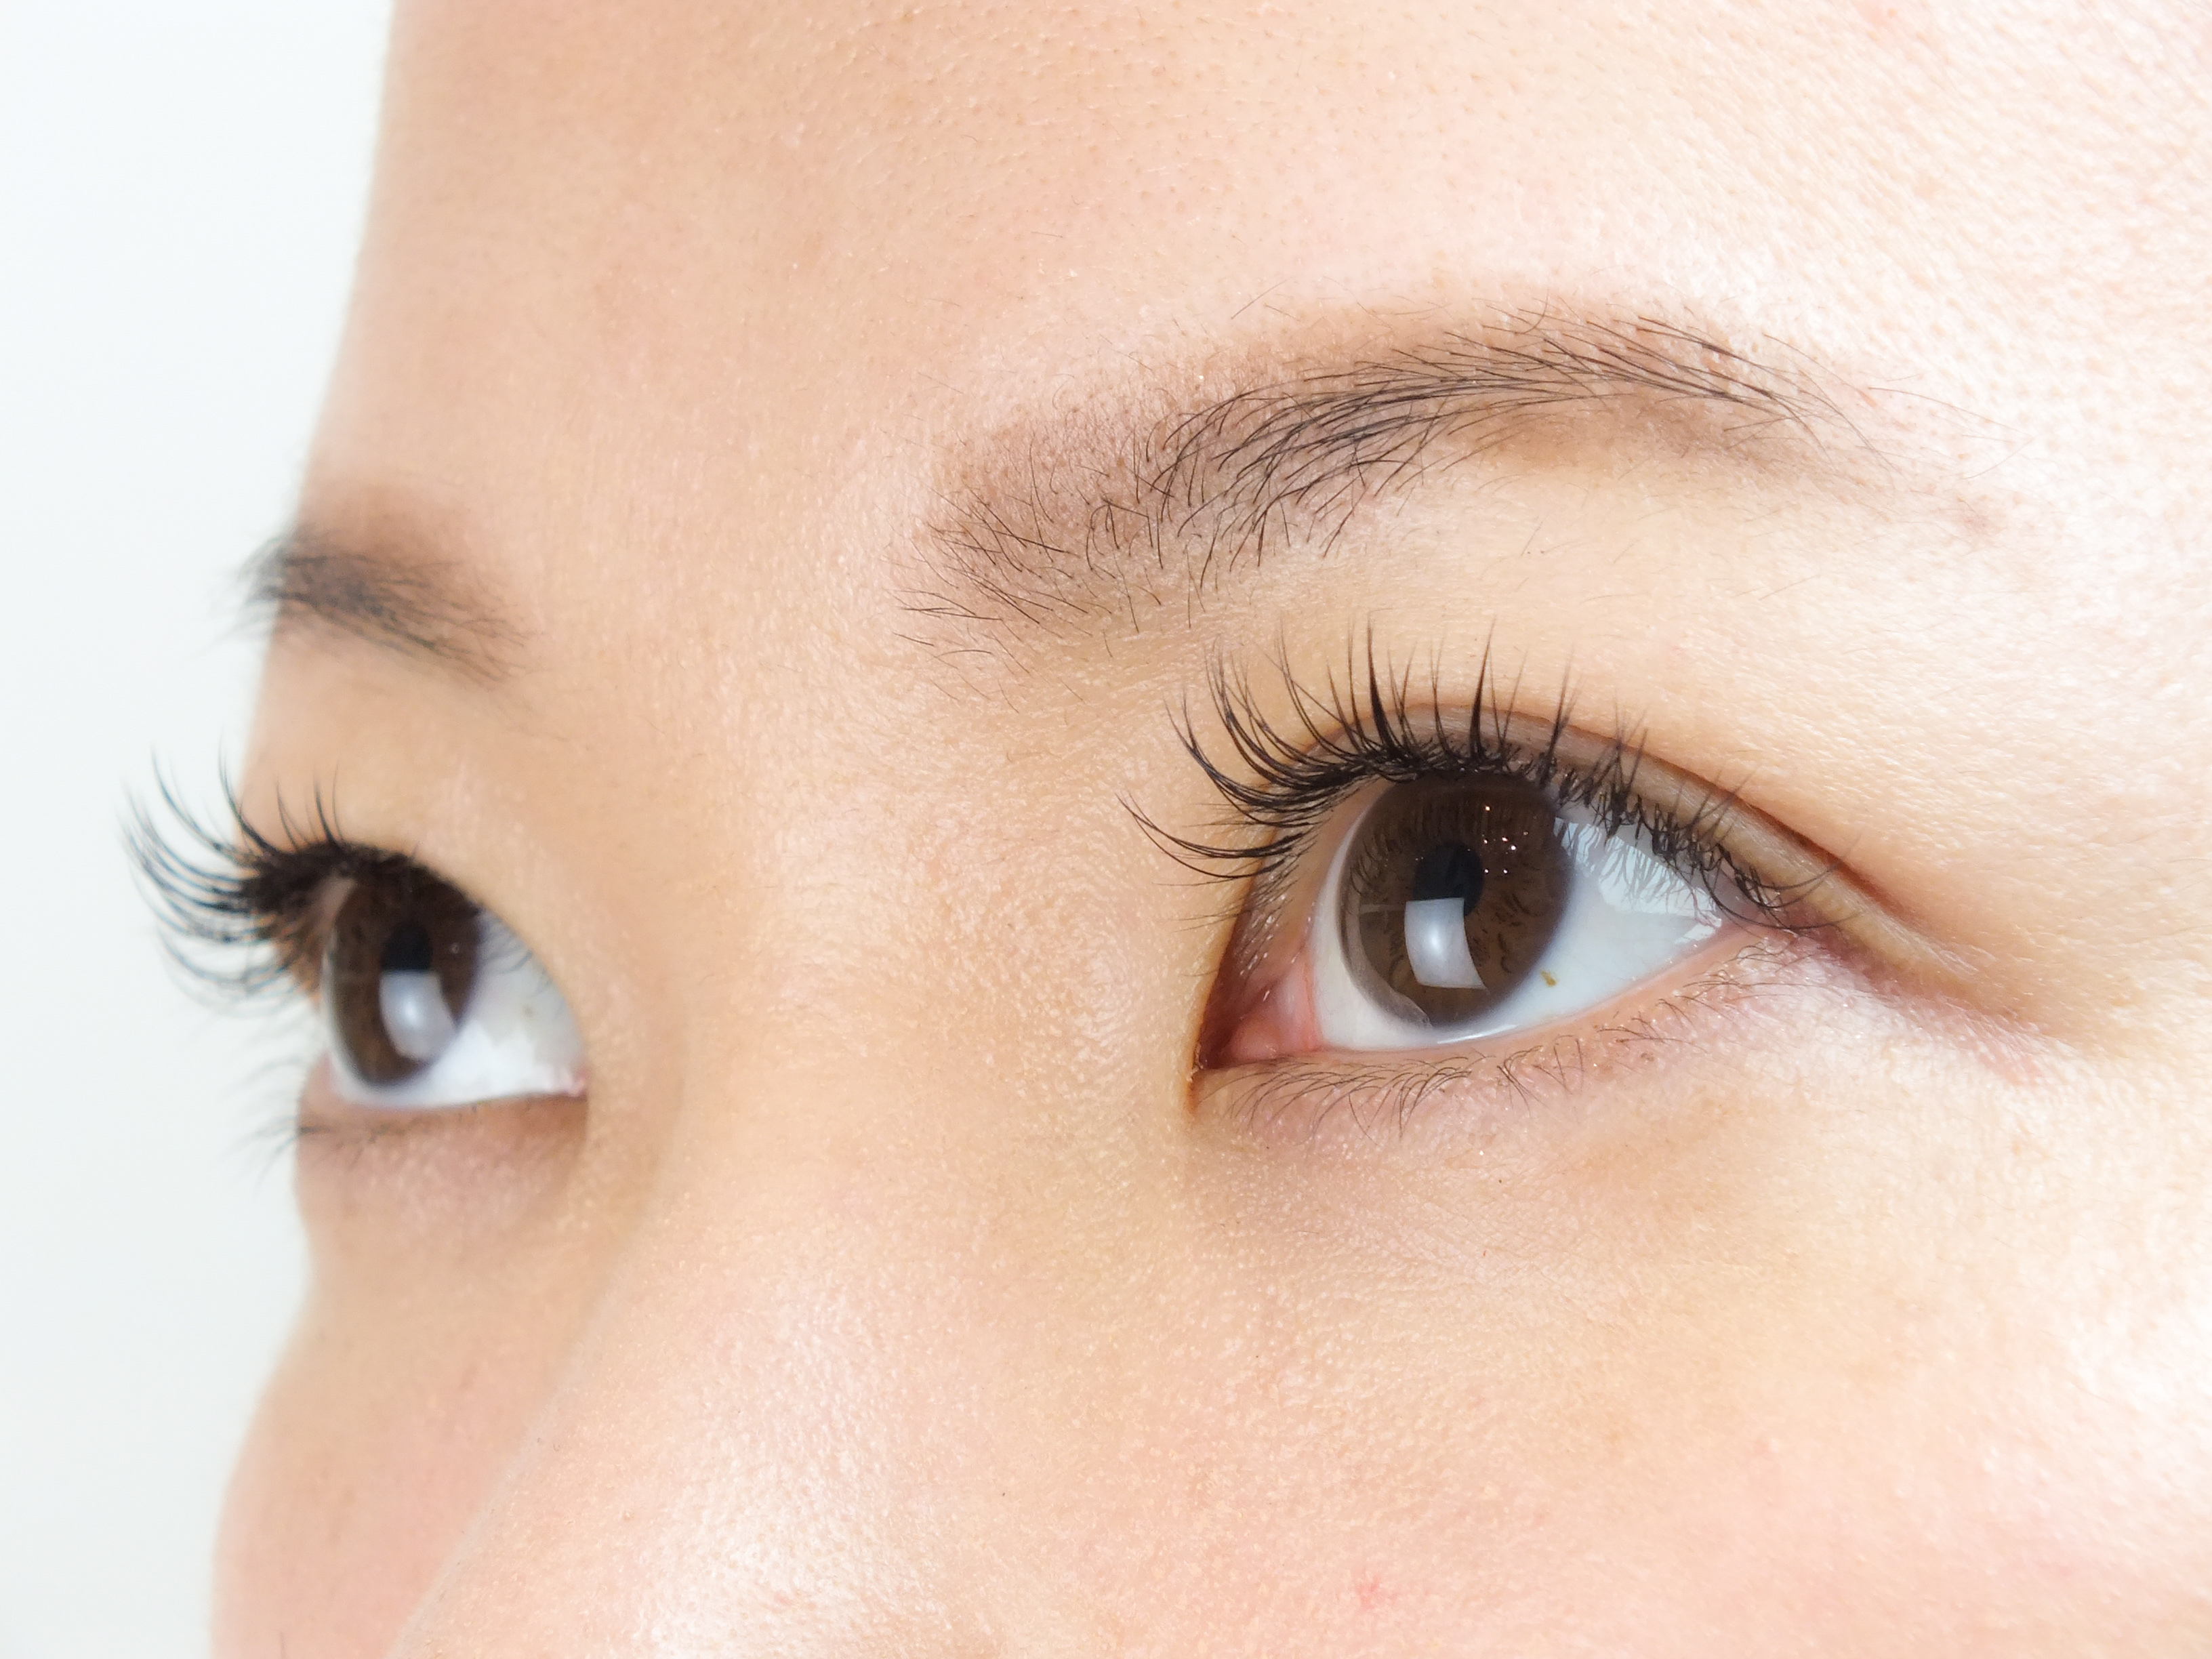 [New] Off Free ★ Sable Natural finish ♪ Up to 80. Relaxing in a private room. 【More than 100 Reviews!】 Long-lasting eyelash ♪